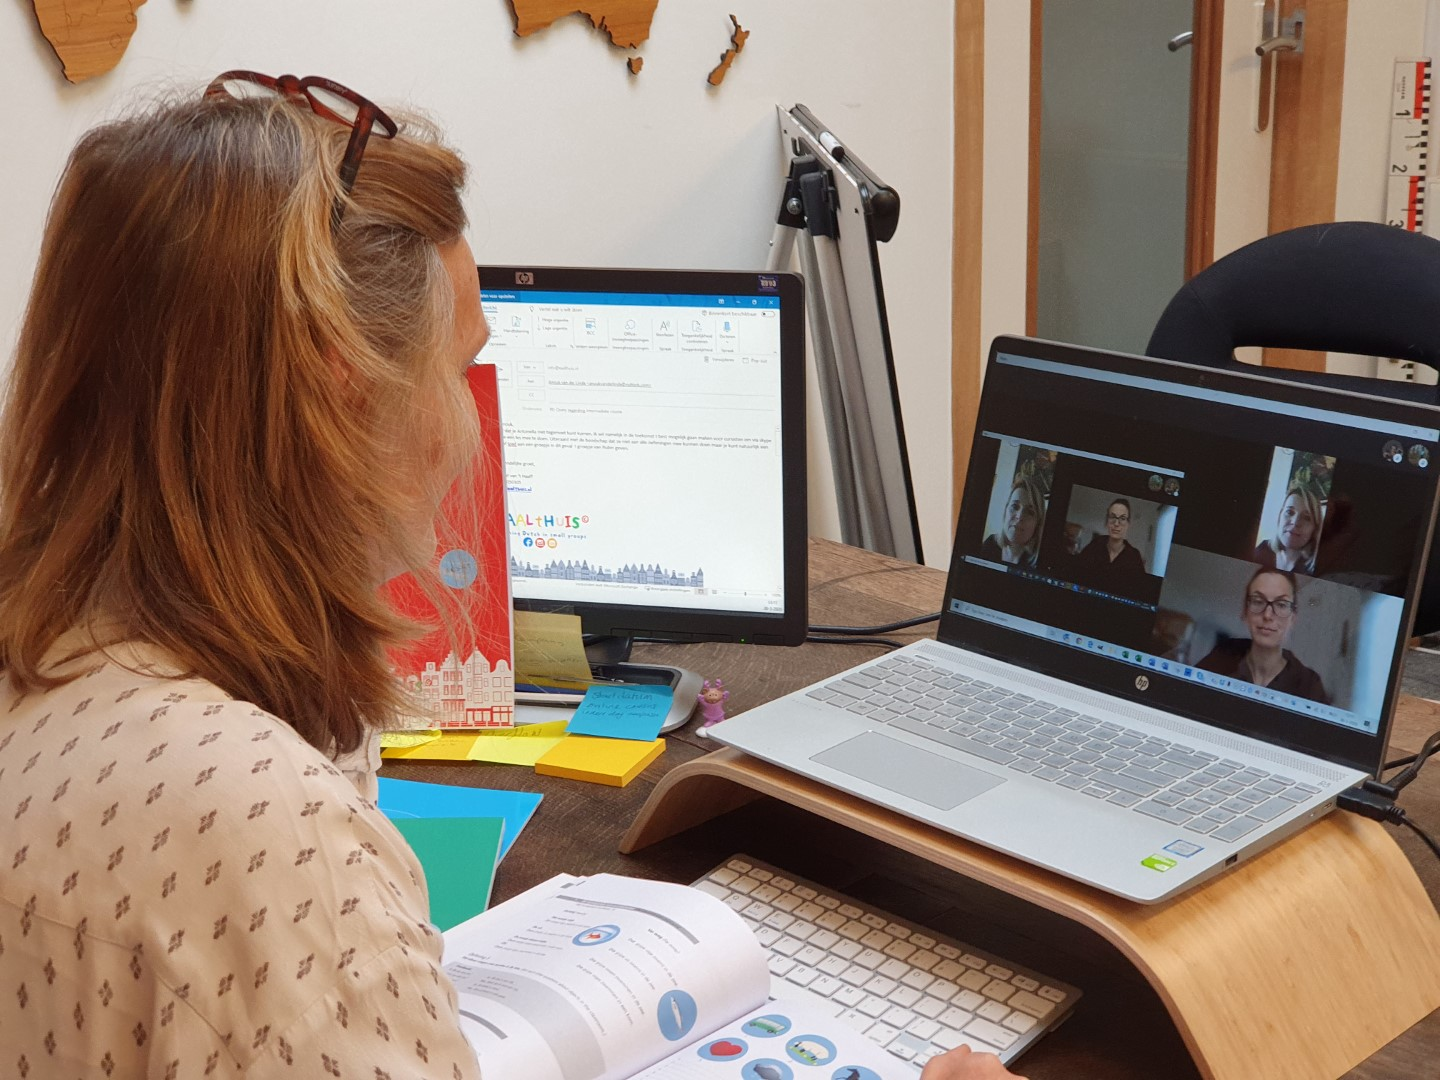 Coronavirus and learning Dutch from home: make the most of it - DutchNews.nl